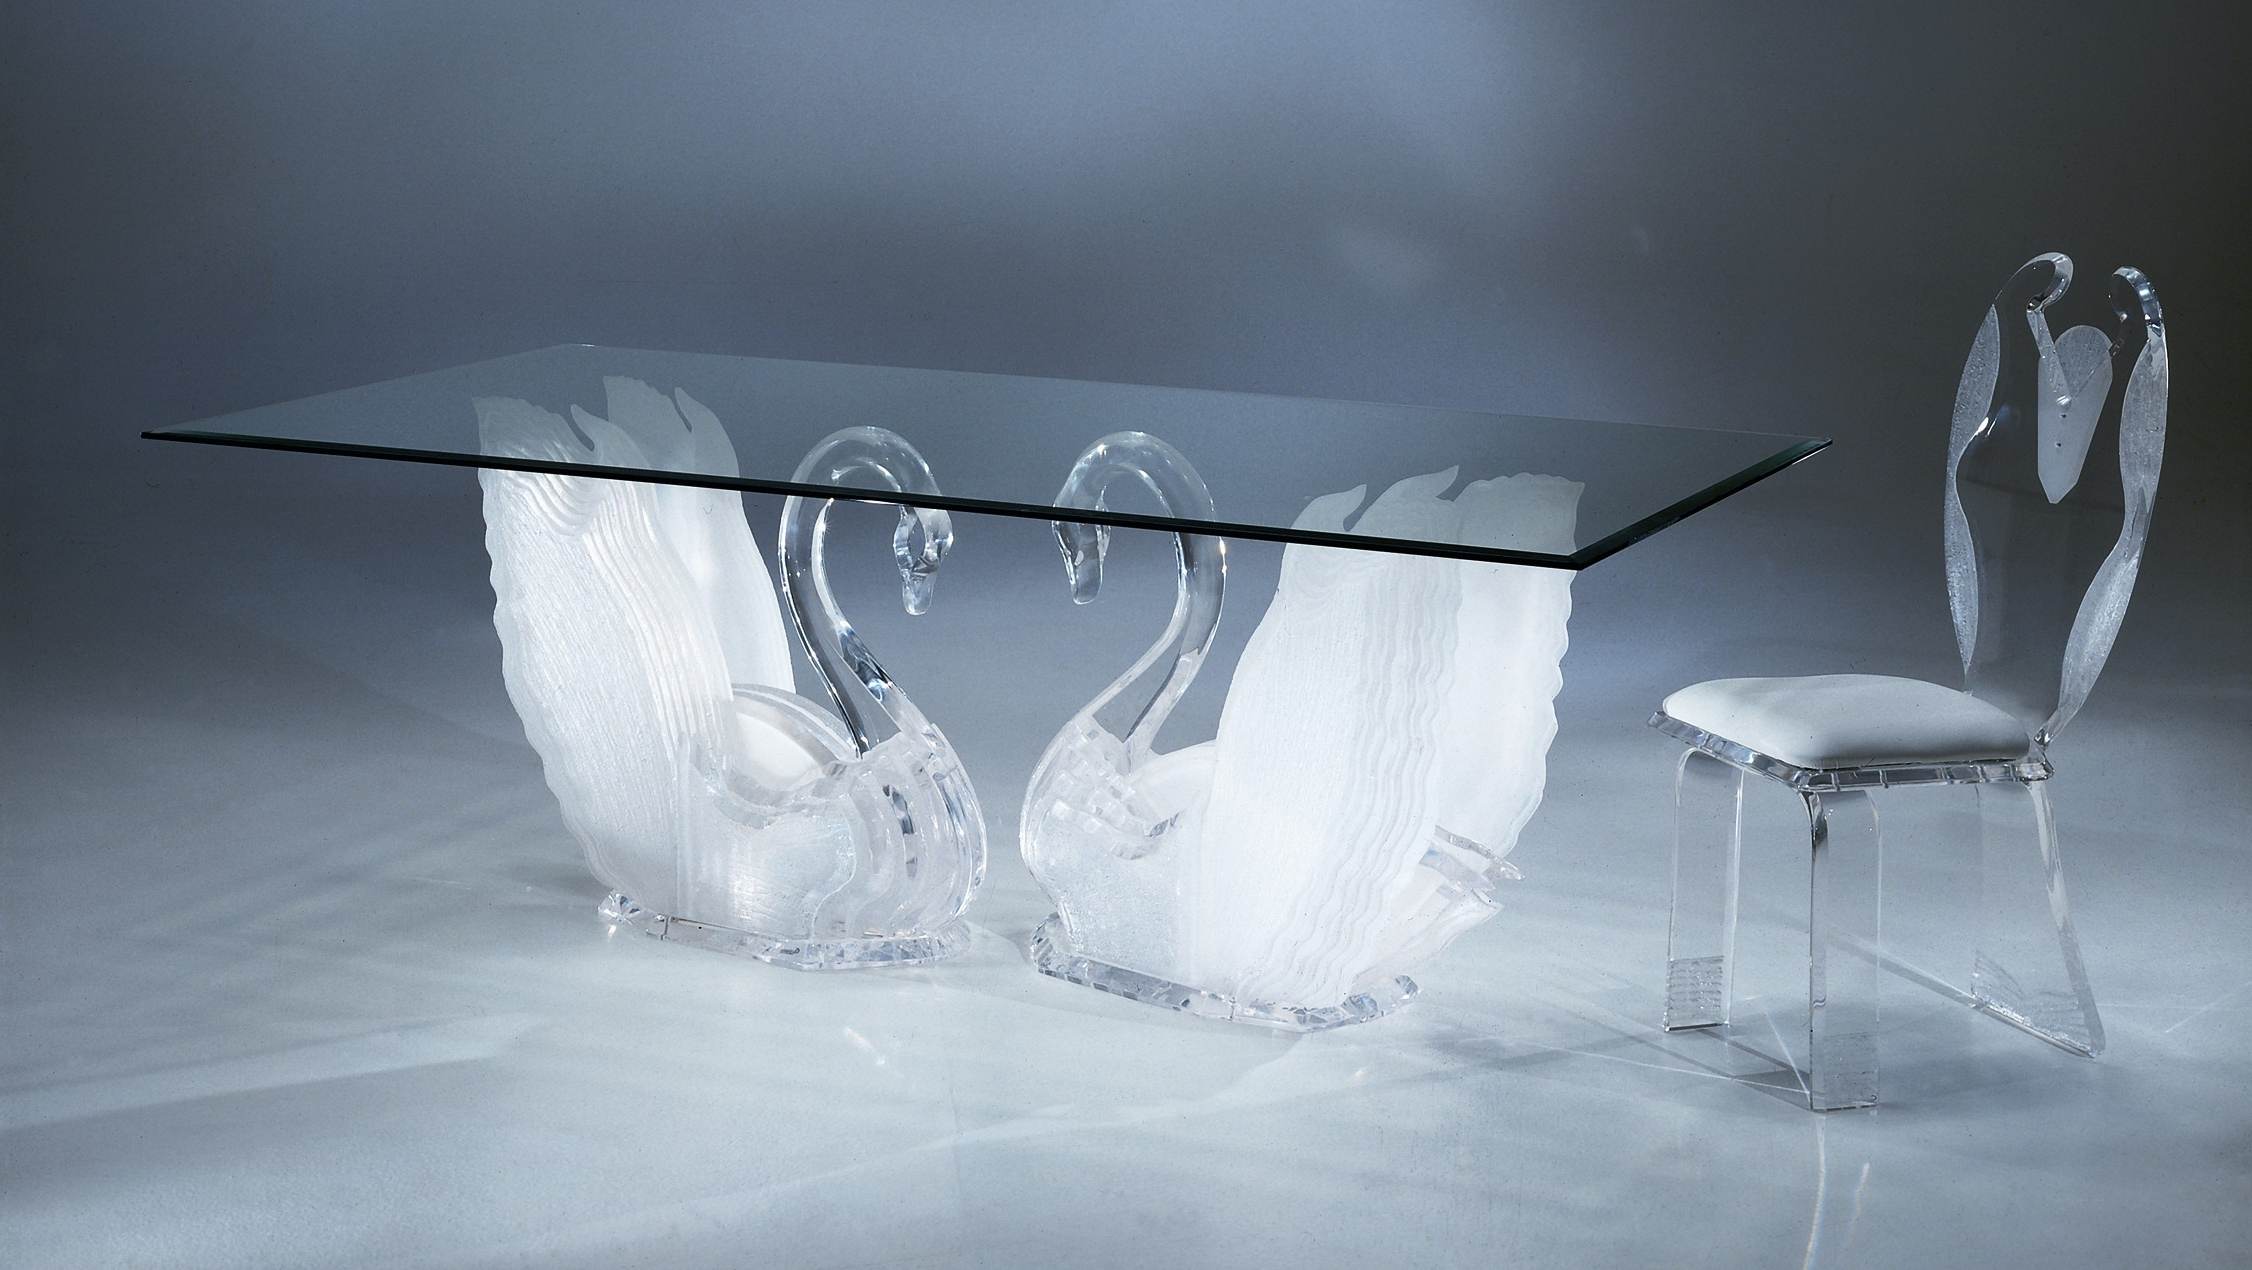 Acrylic Dining Tables Regarding Latest Legend Swan Dining Table, Acrylic Coffee Tables, Acrylic Furniture (View 7 of 25)